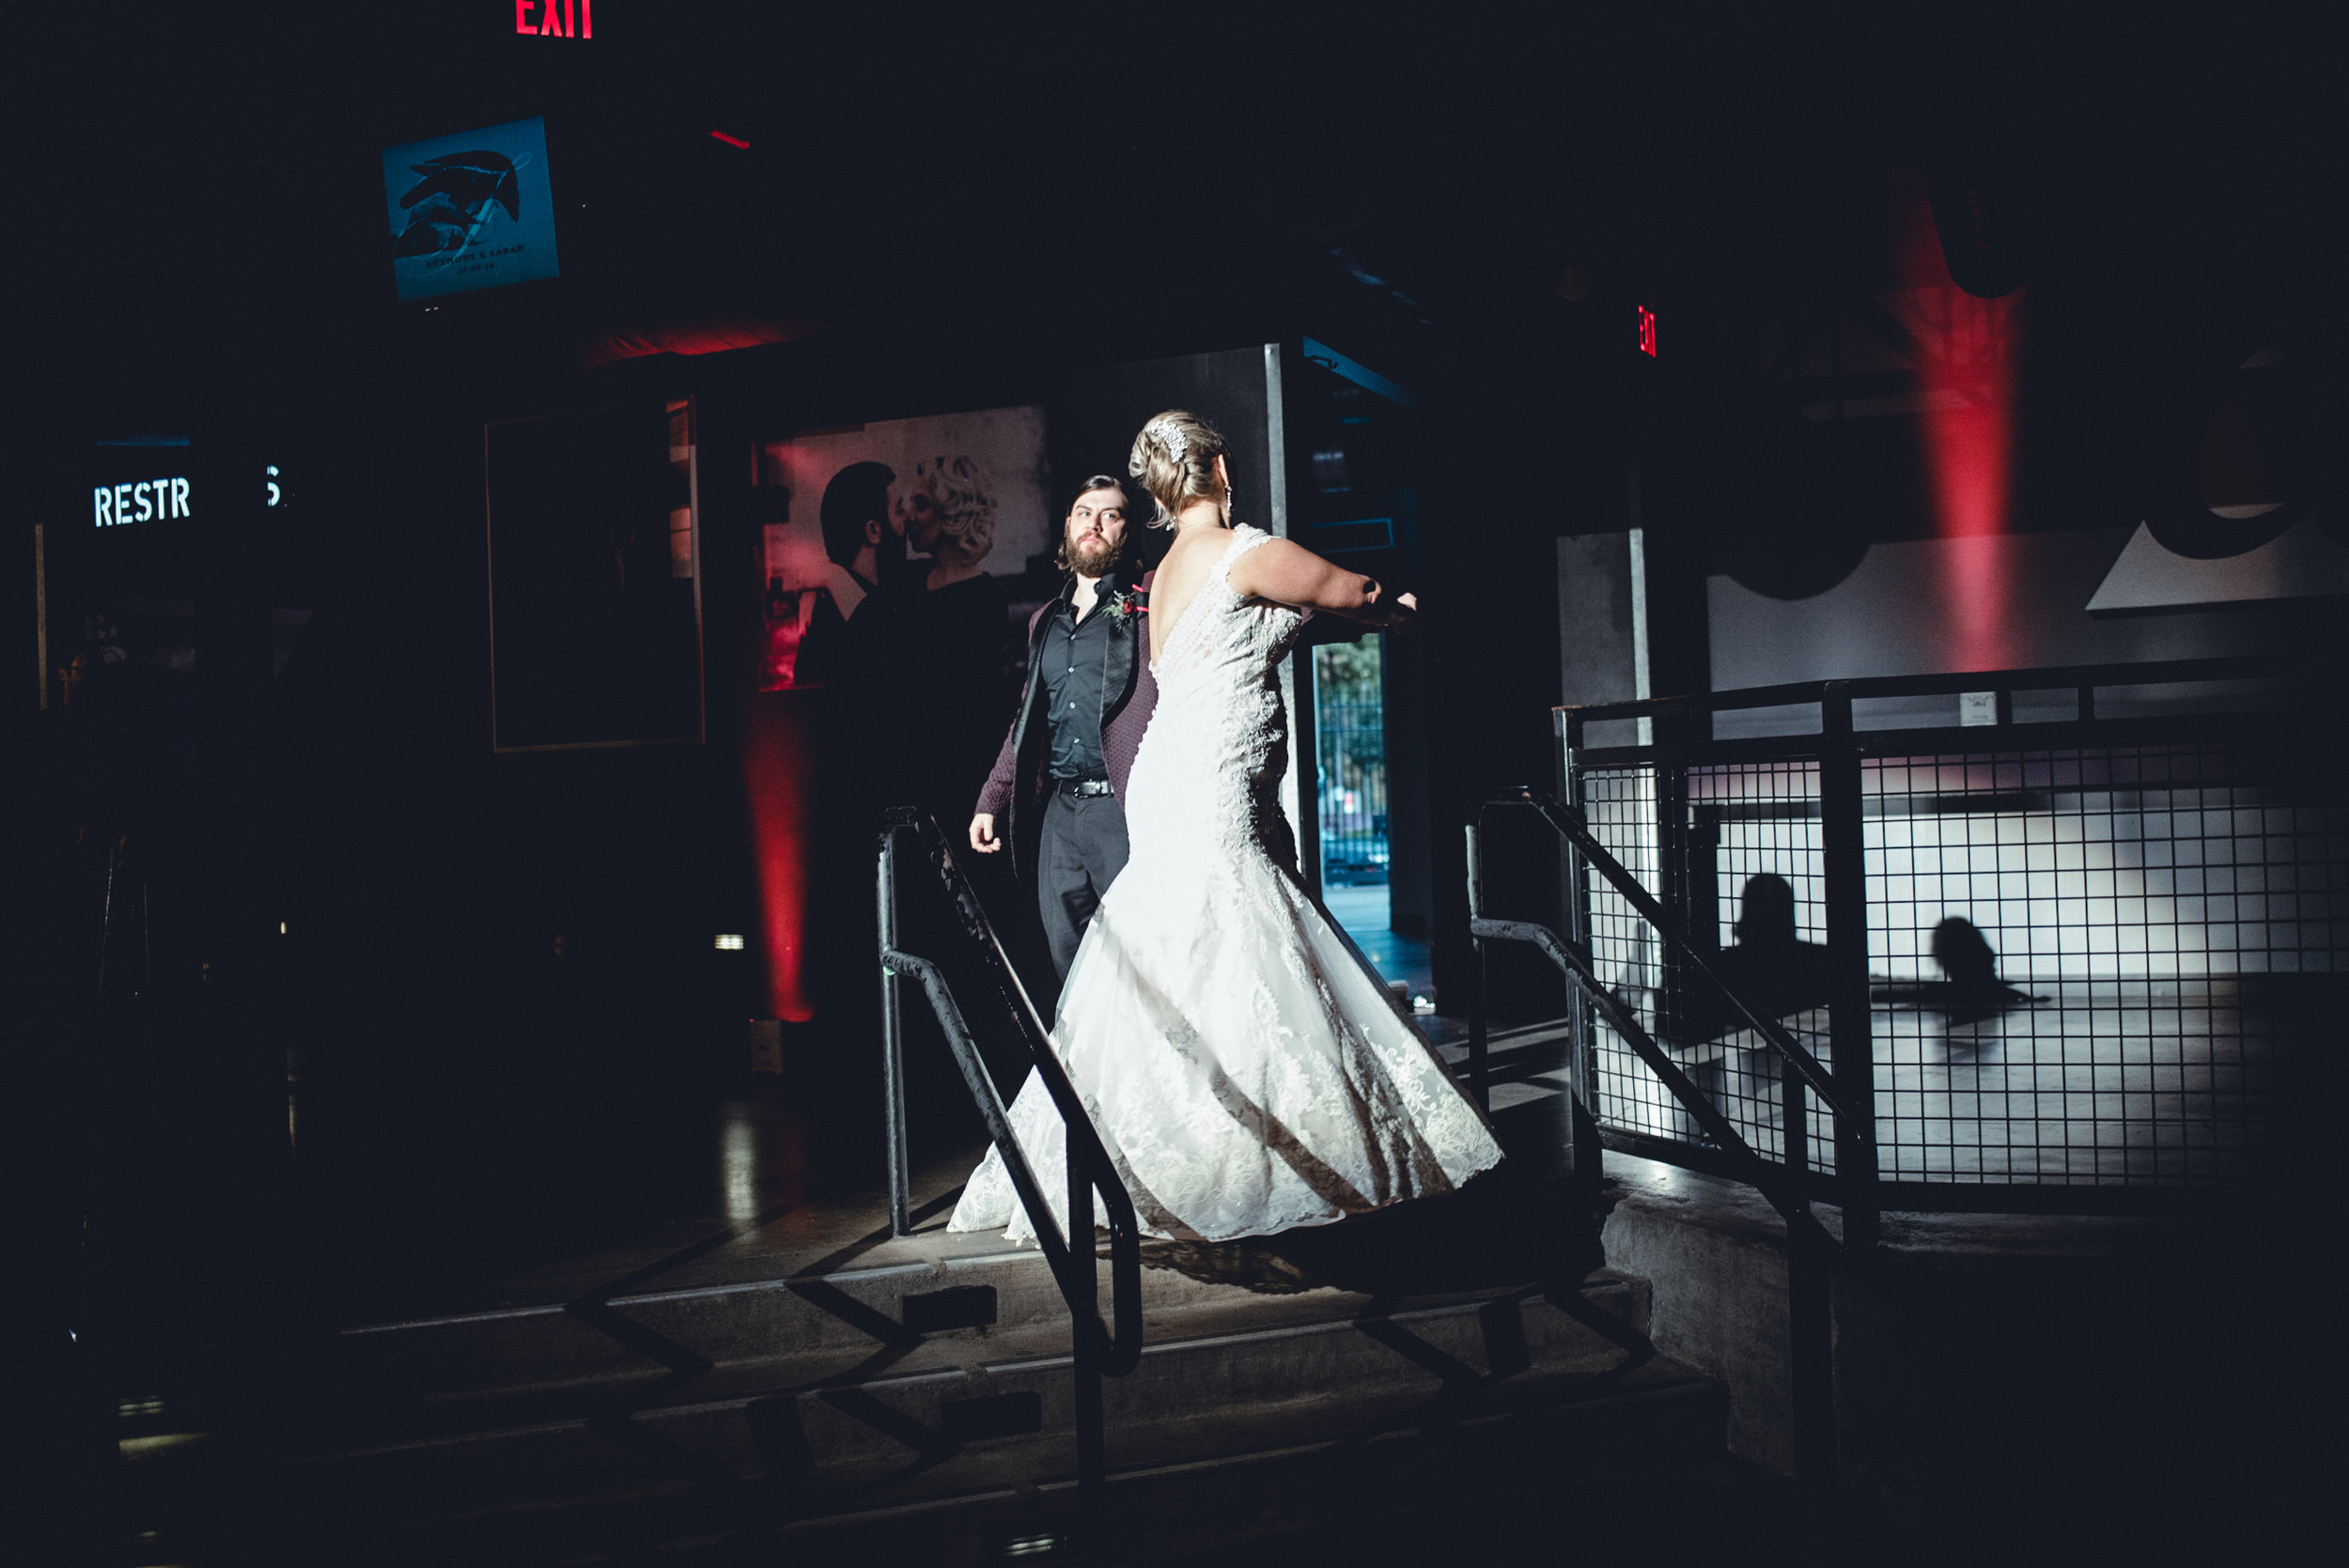 Pittsburgh Wedding Photographer - Requiem Images - Stage AE - Rock n Roll 1542.jpg